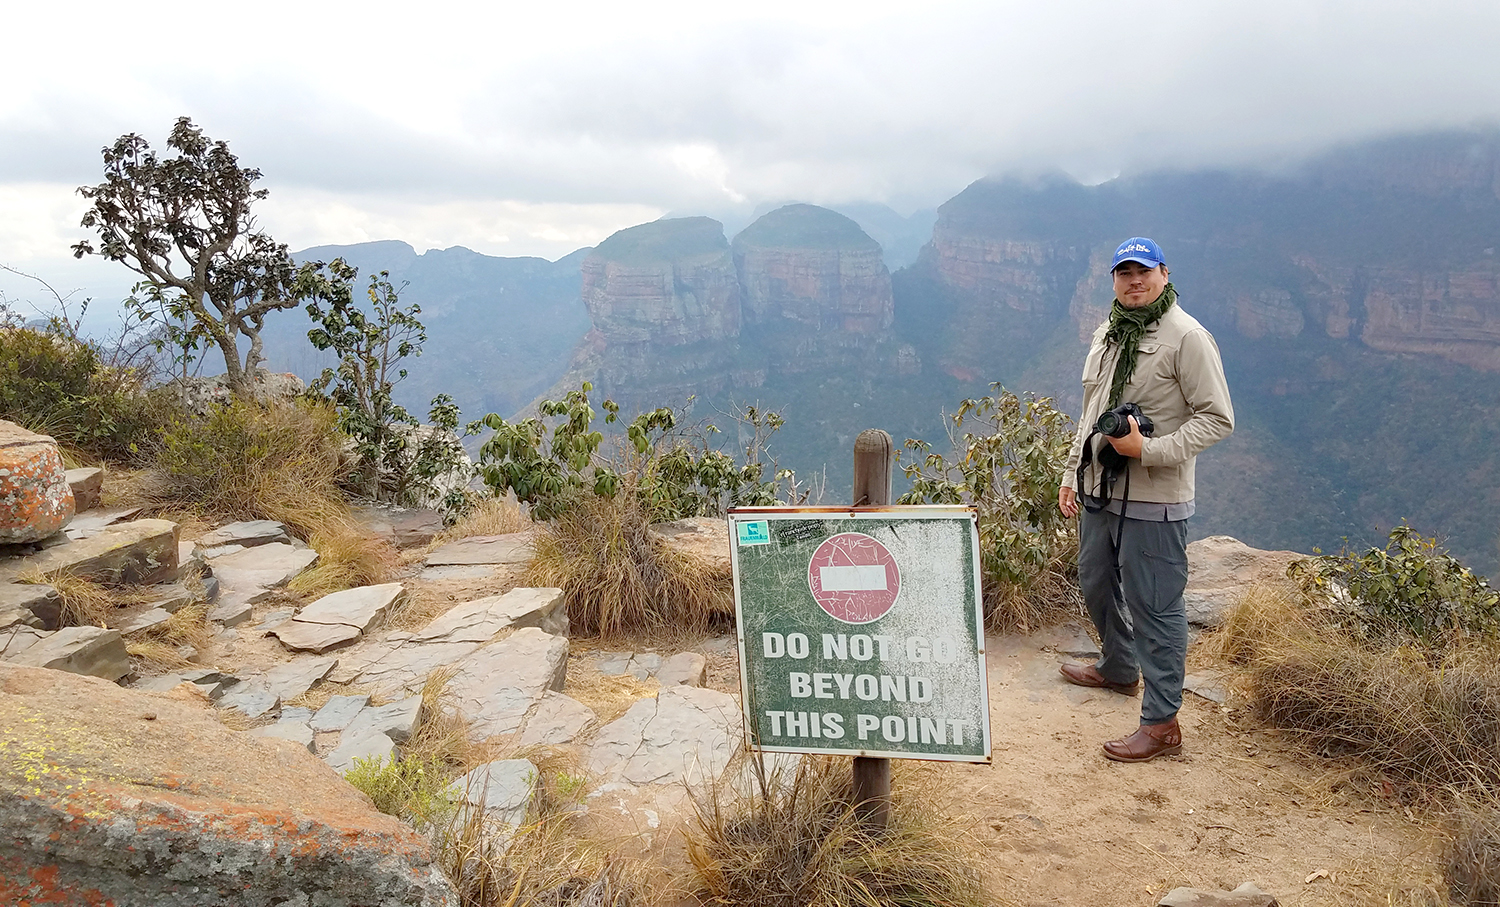 South.africa.BlydeCanyon.20170828_101949w